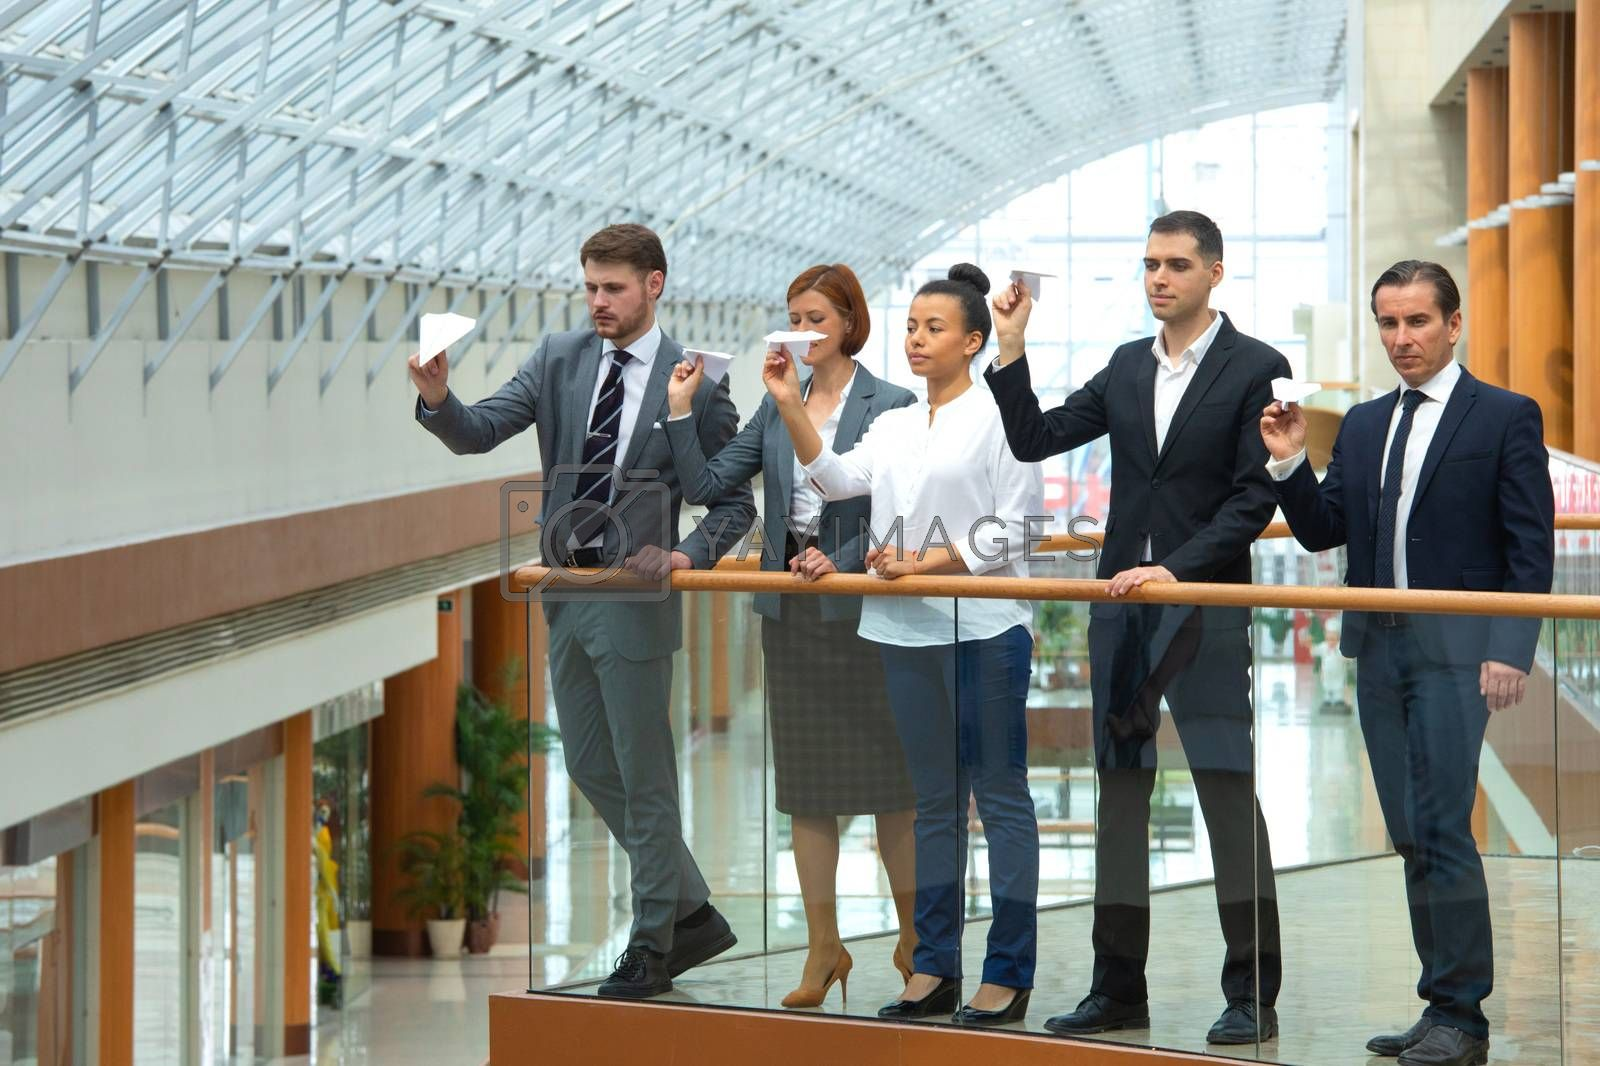 Team of business people throwing together paper planes in modern office building